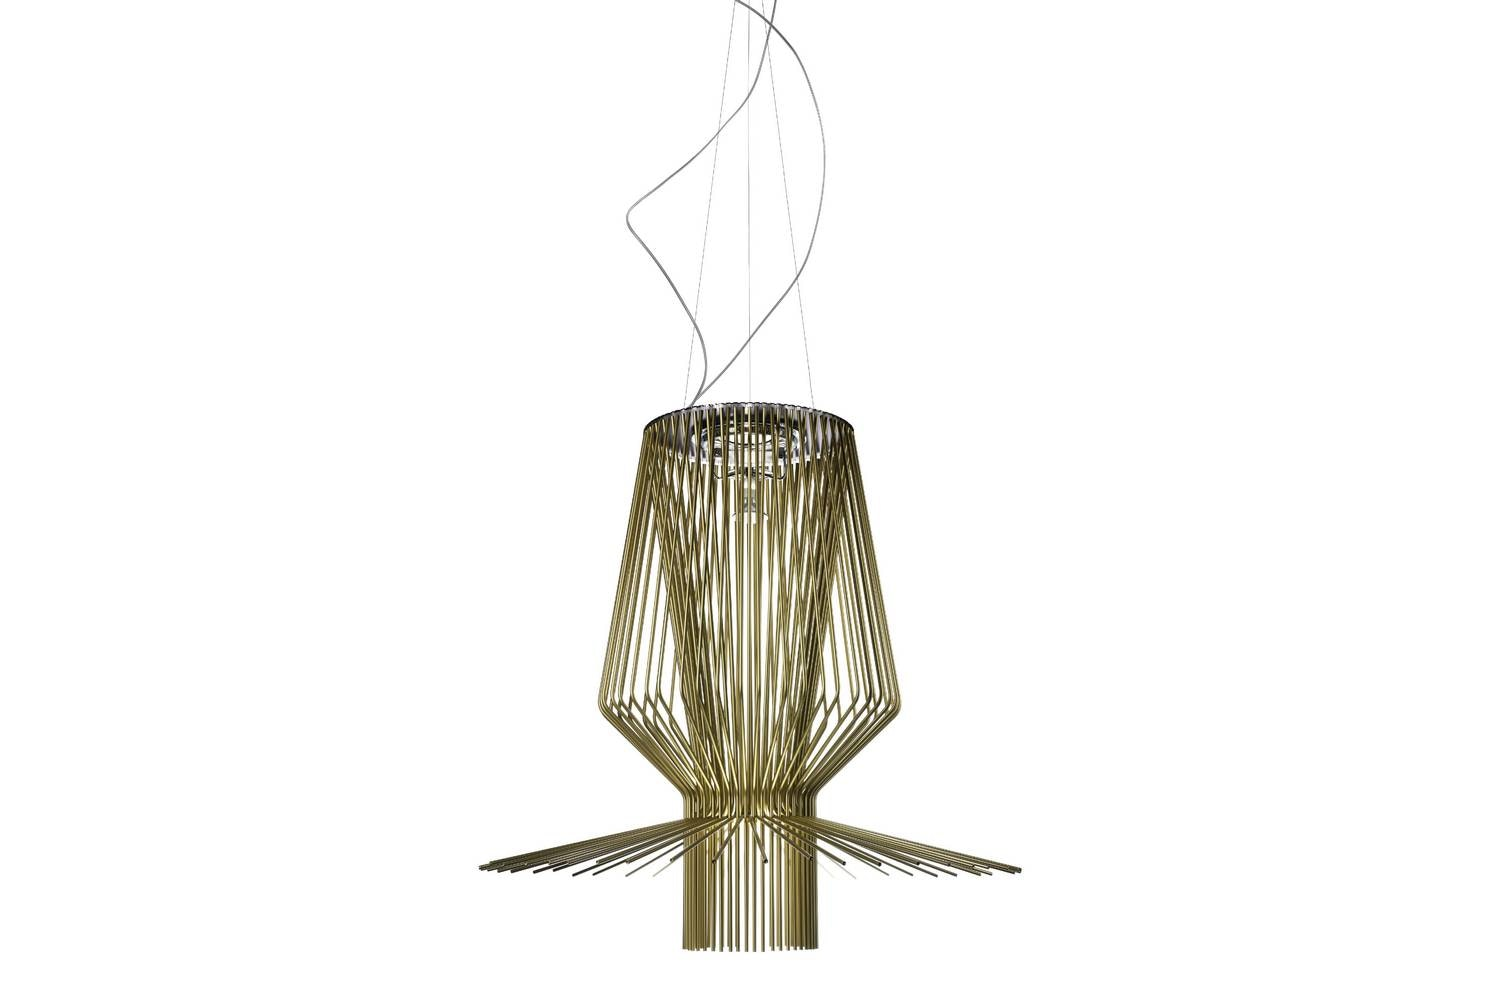 Allegro Assai Suspension Lamp by Atelier Oi for Foscarini